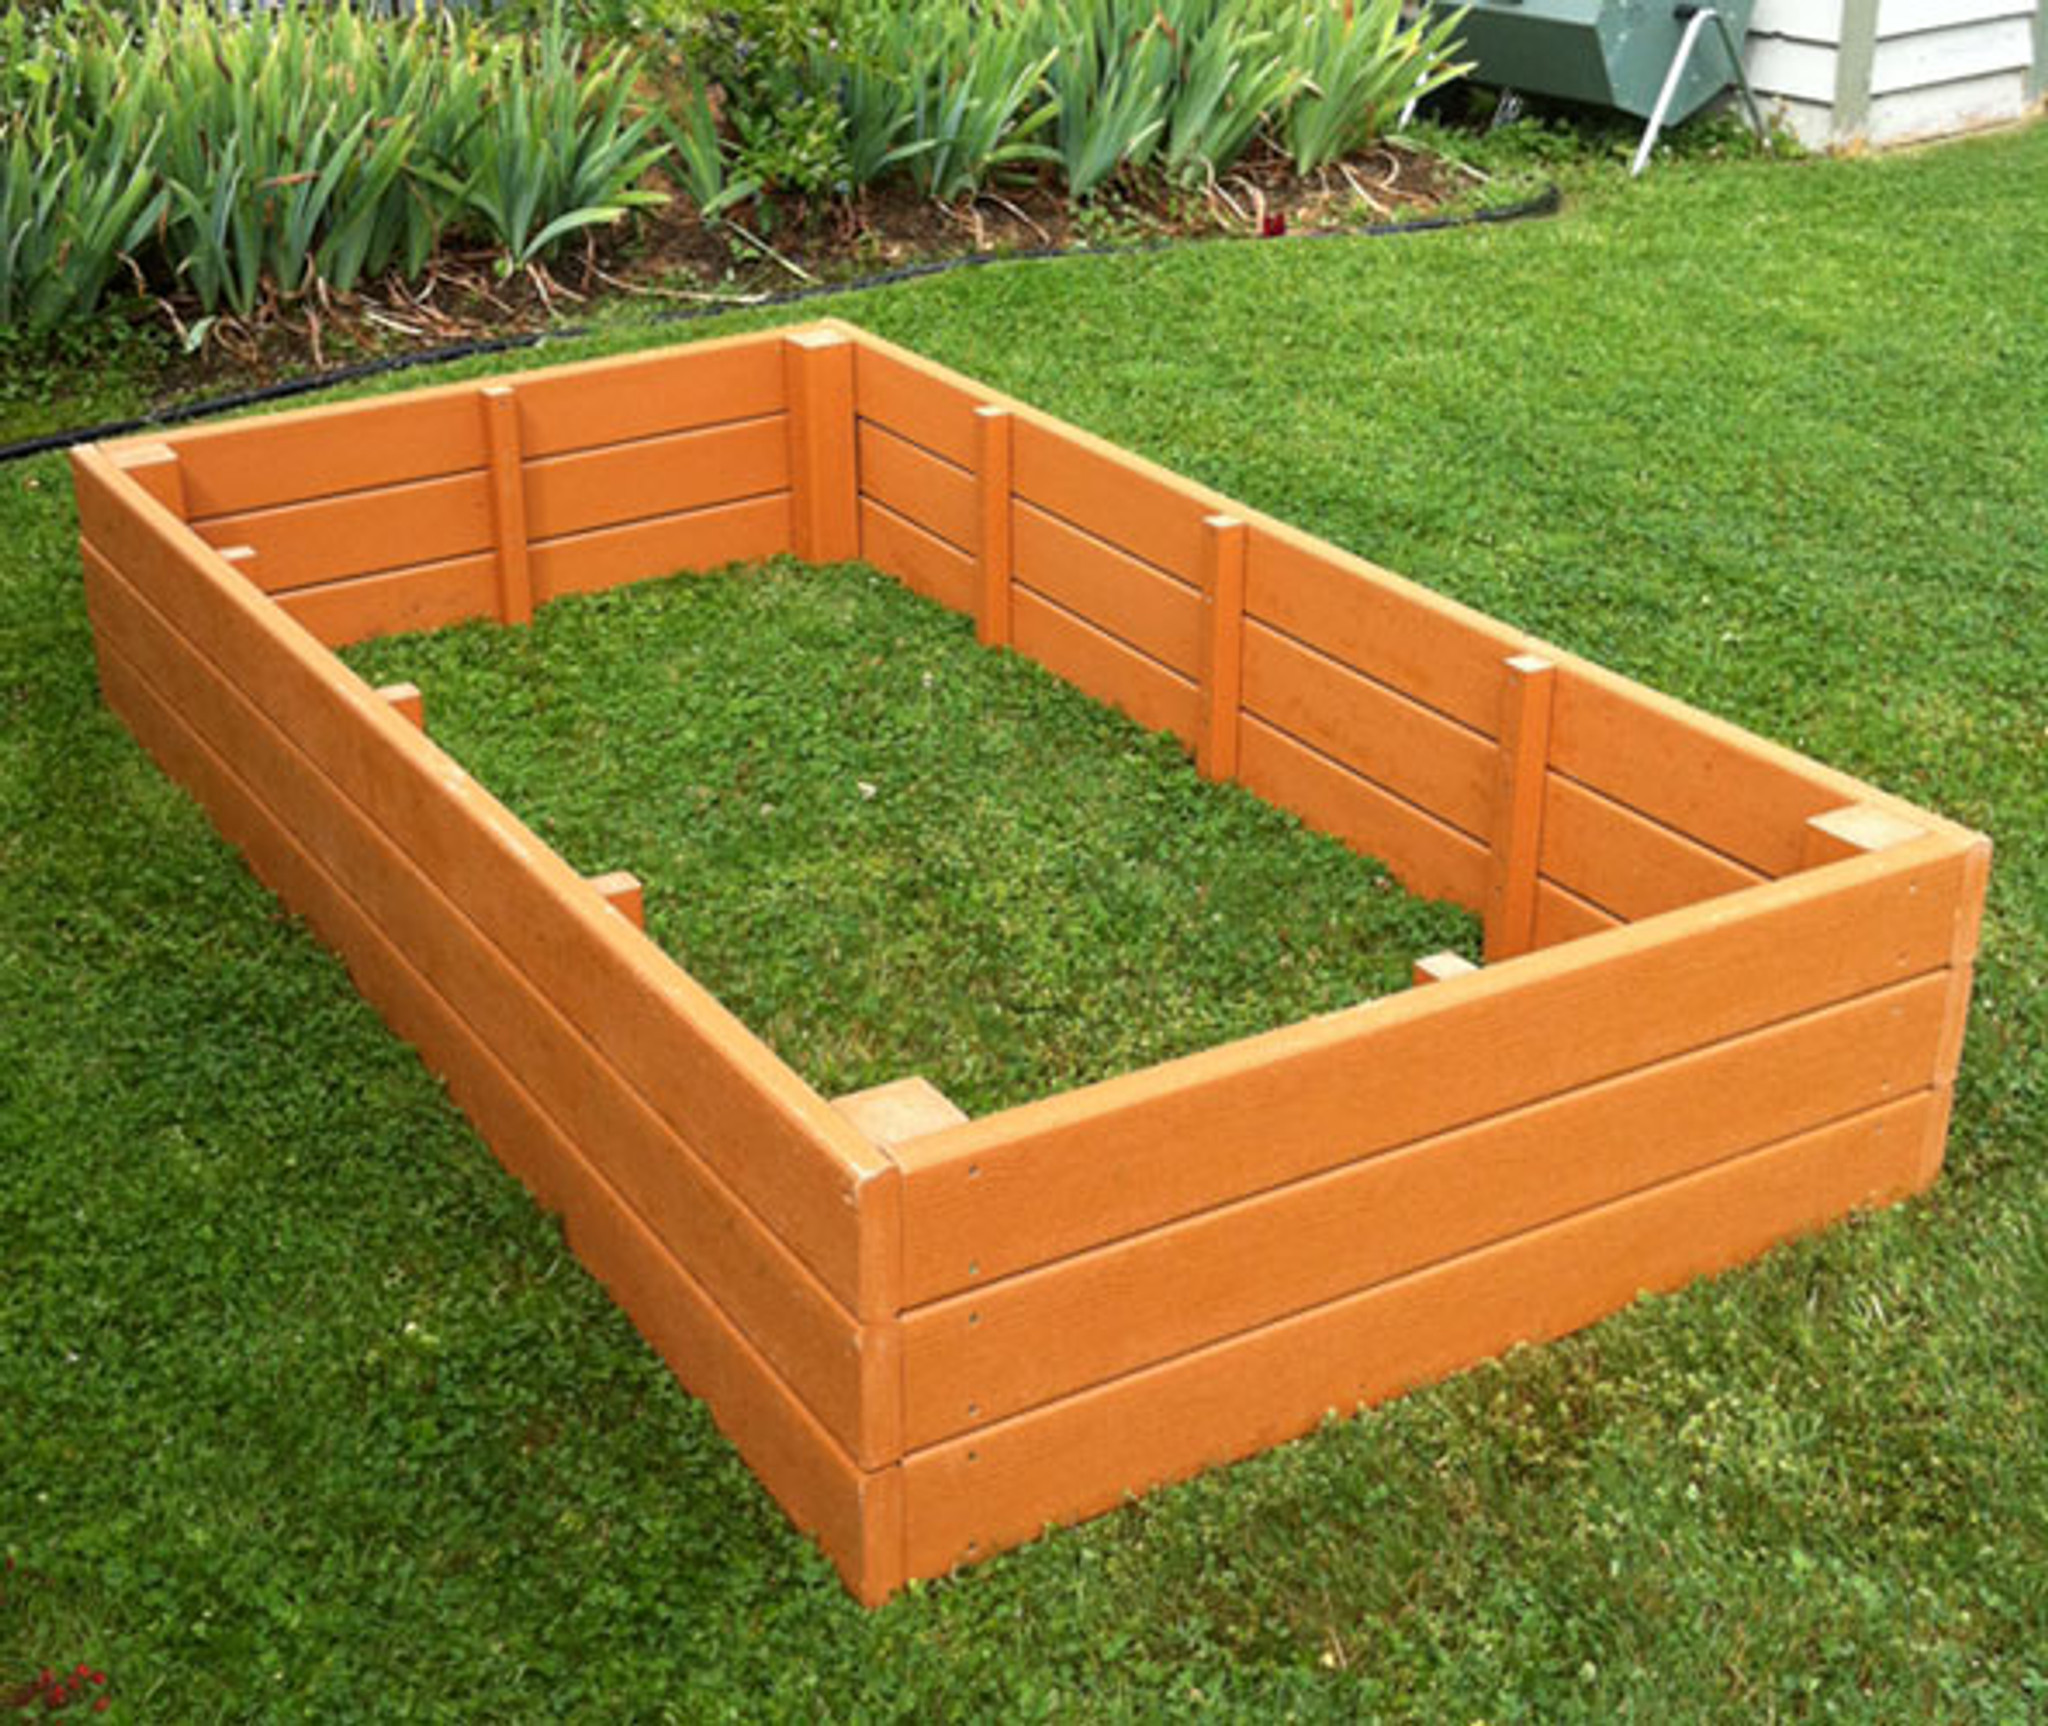 Recycled Plastic Raised Garden Bed 4 X 8 X 16 5 Eartheasy Com